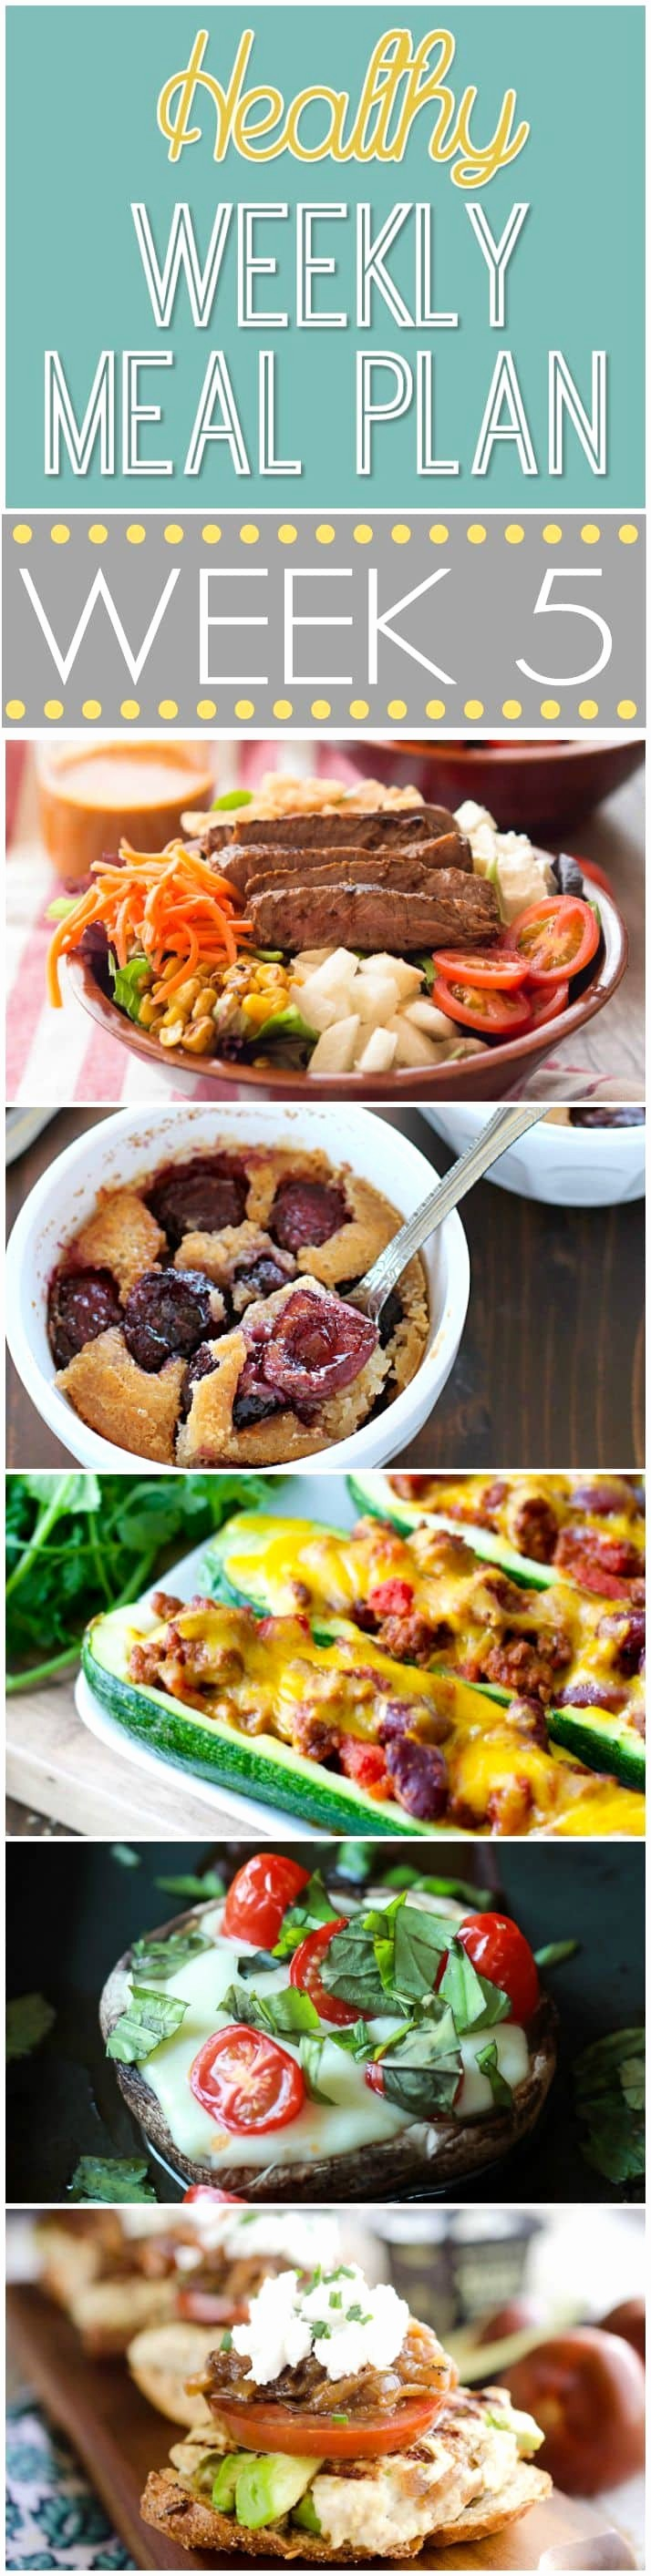 Weekly Meal and Snack Planner New Healthy Weekly Meal Plan 5 Yummy Healthy Easy